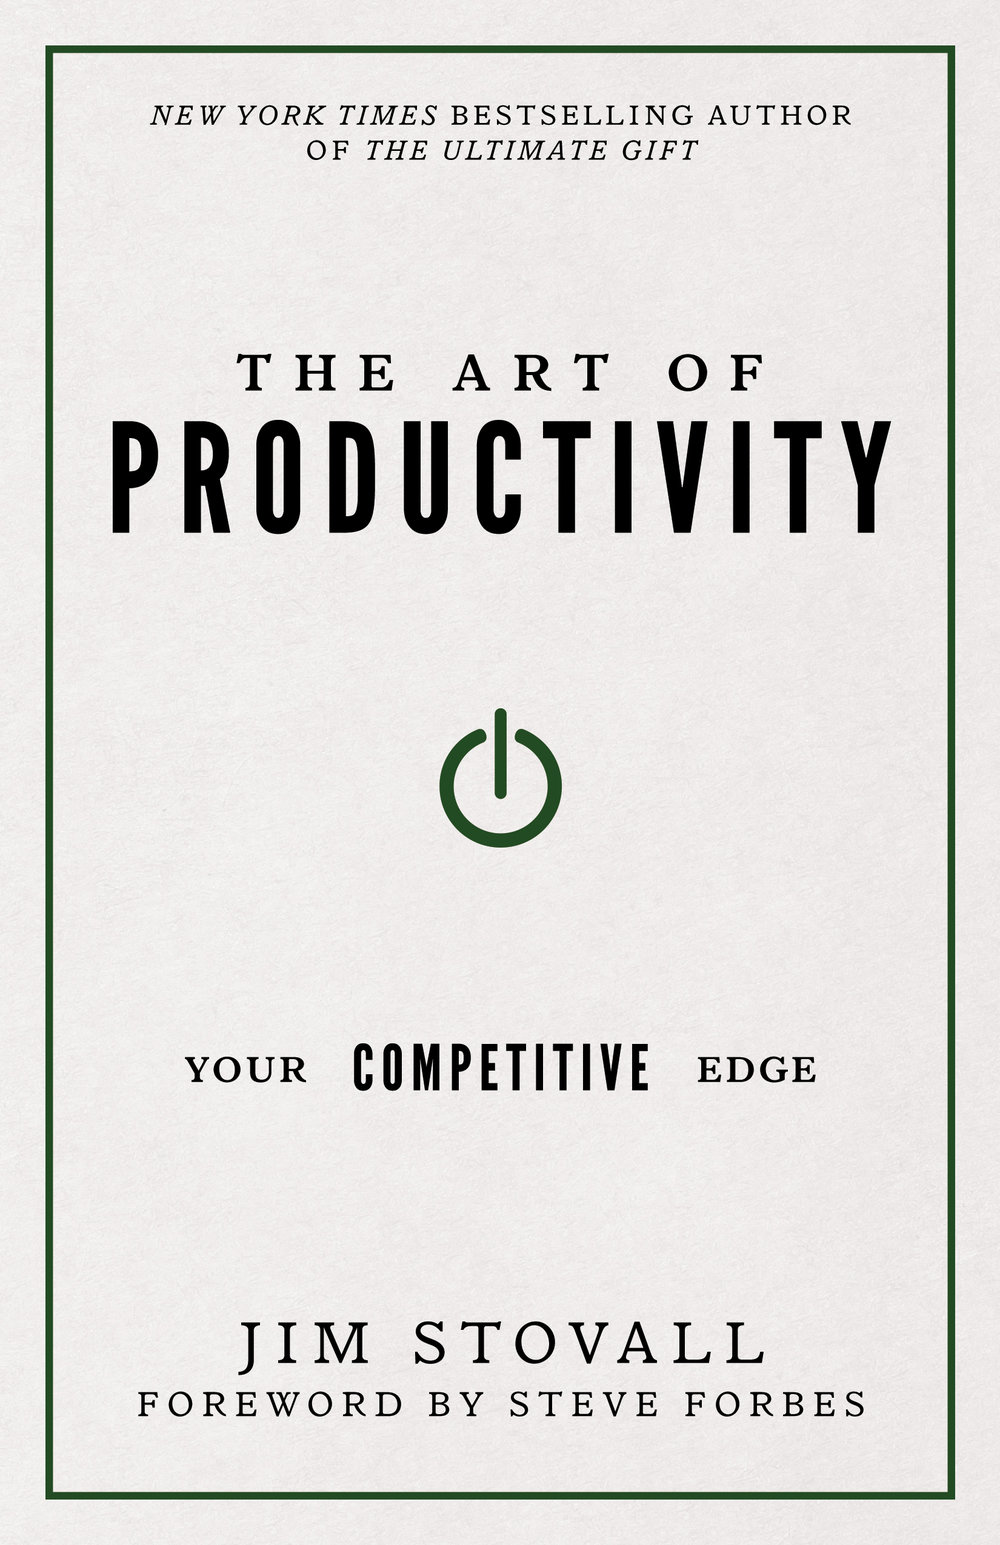 The Art of Productivity - By jim stovall